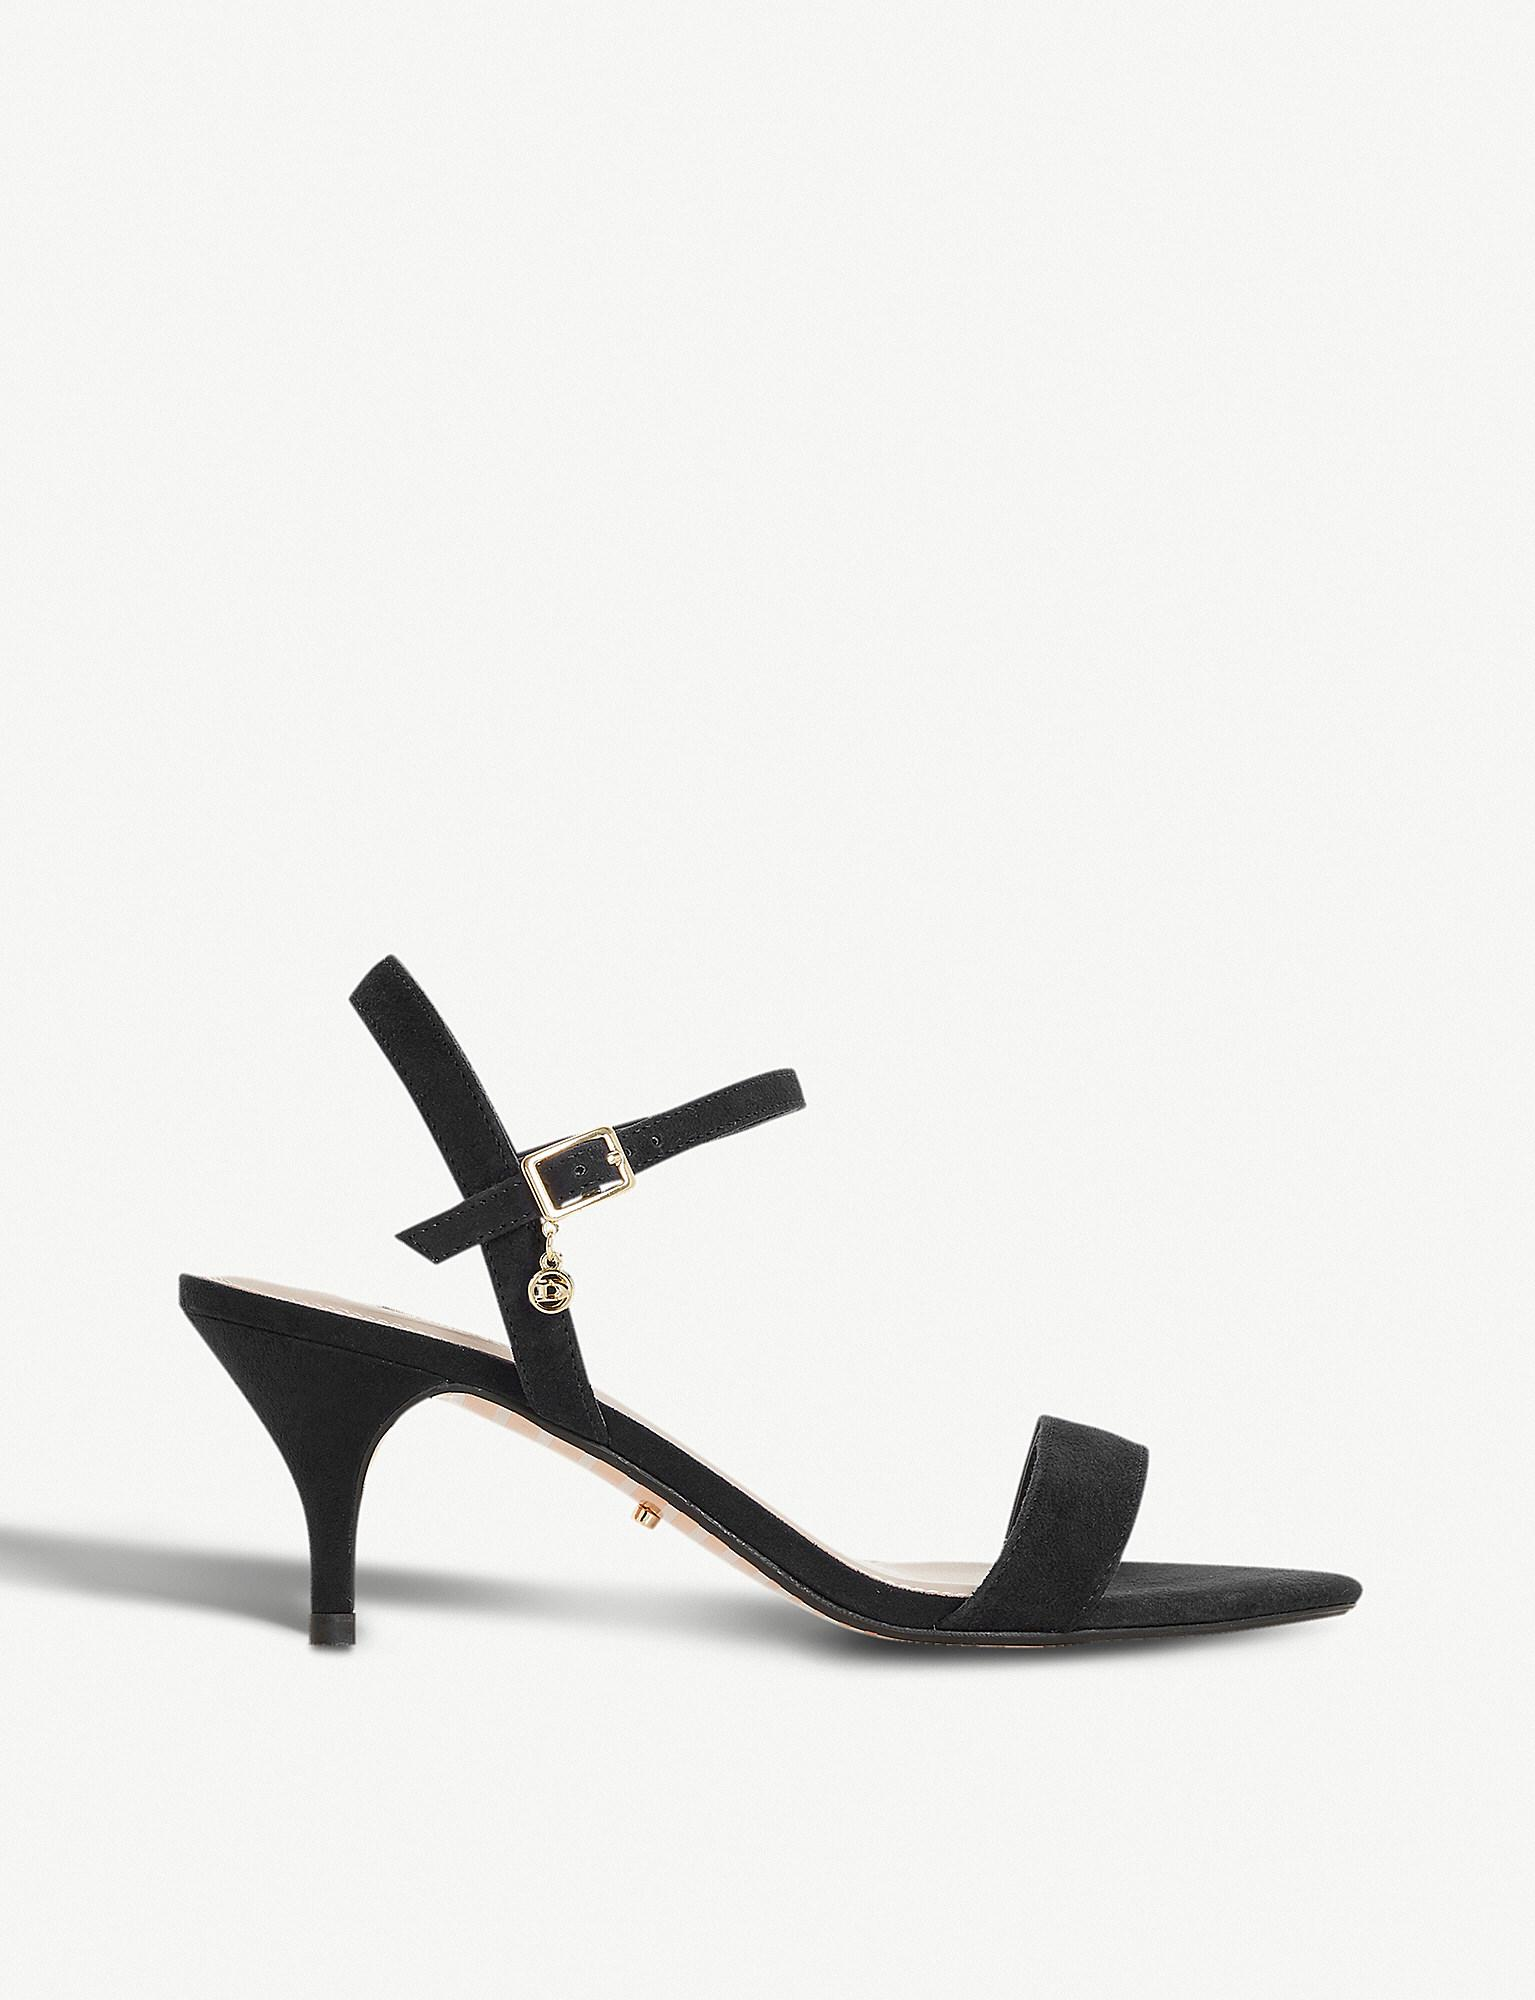 Dune Monnrow Strappy Suede Sandals in